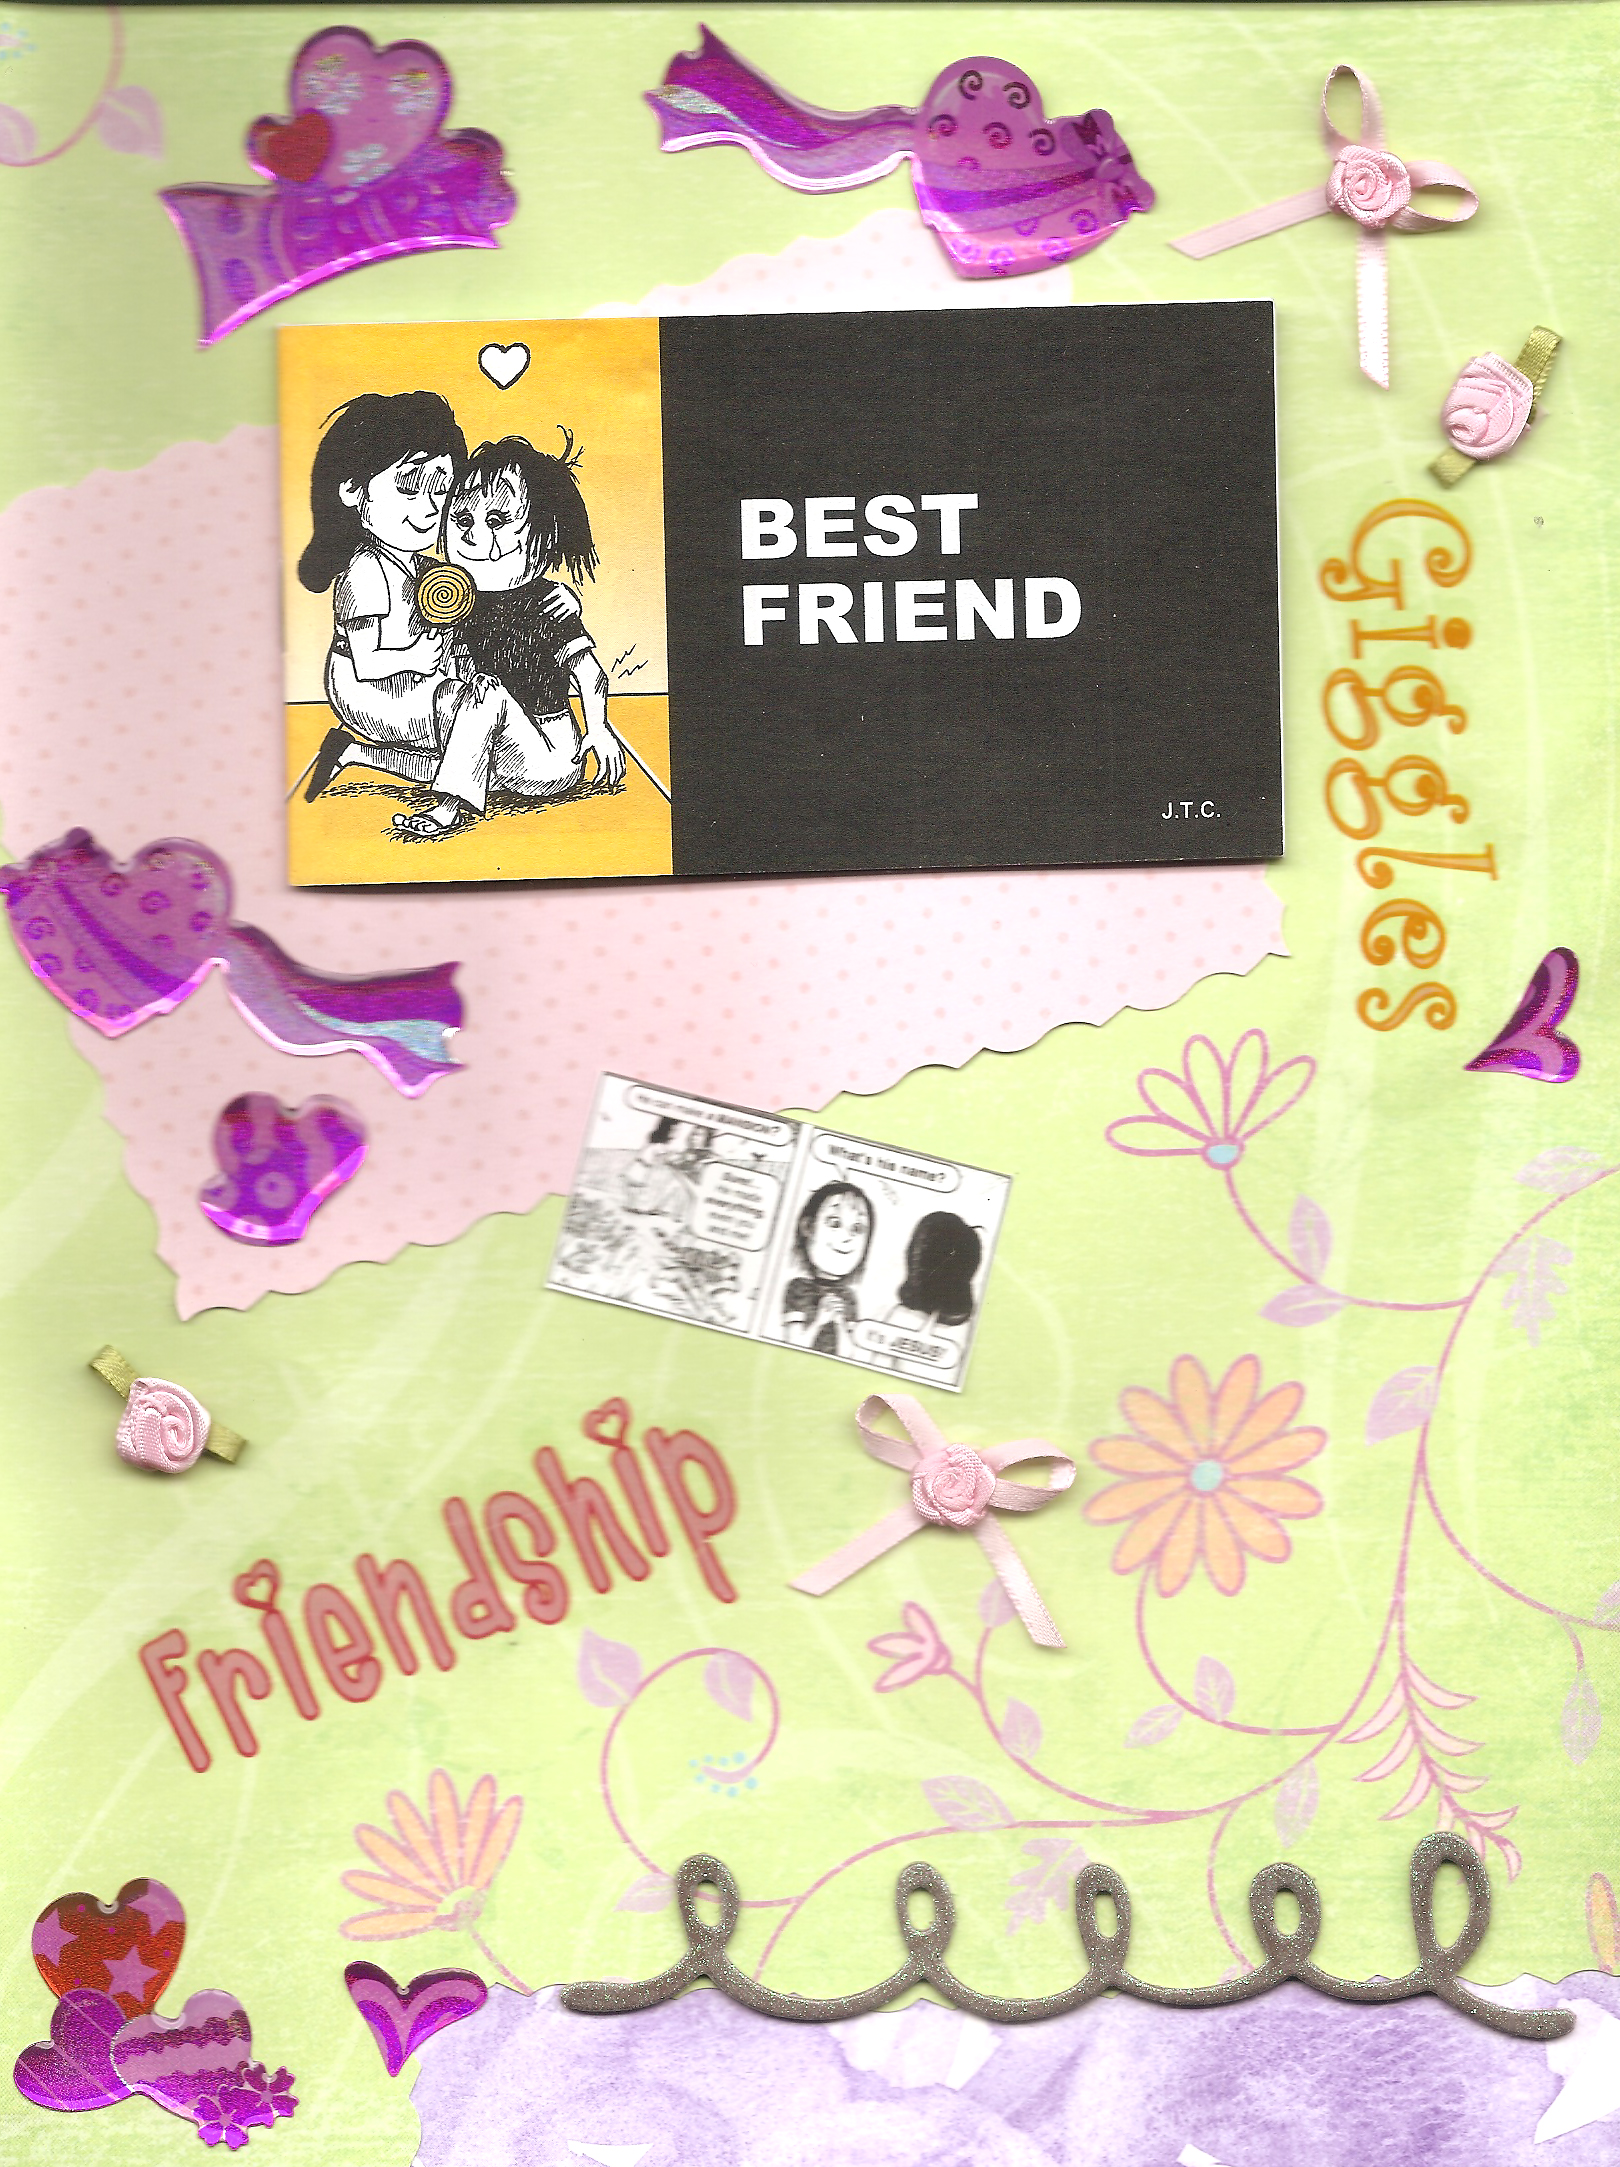 Scrapbook ideas for best friend - A Scrapbook Page Depicting The Chick Tract Best Friend On A Green Page